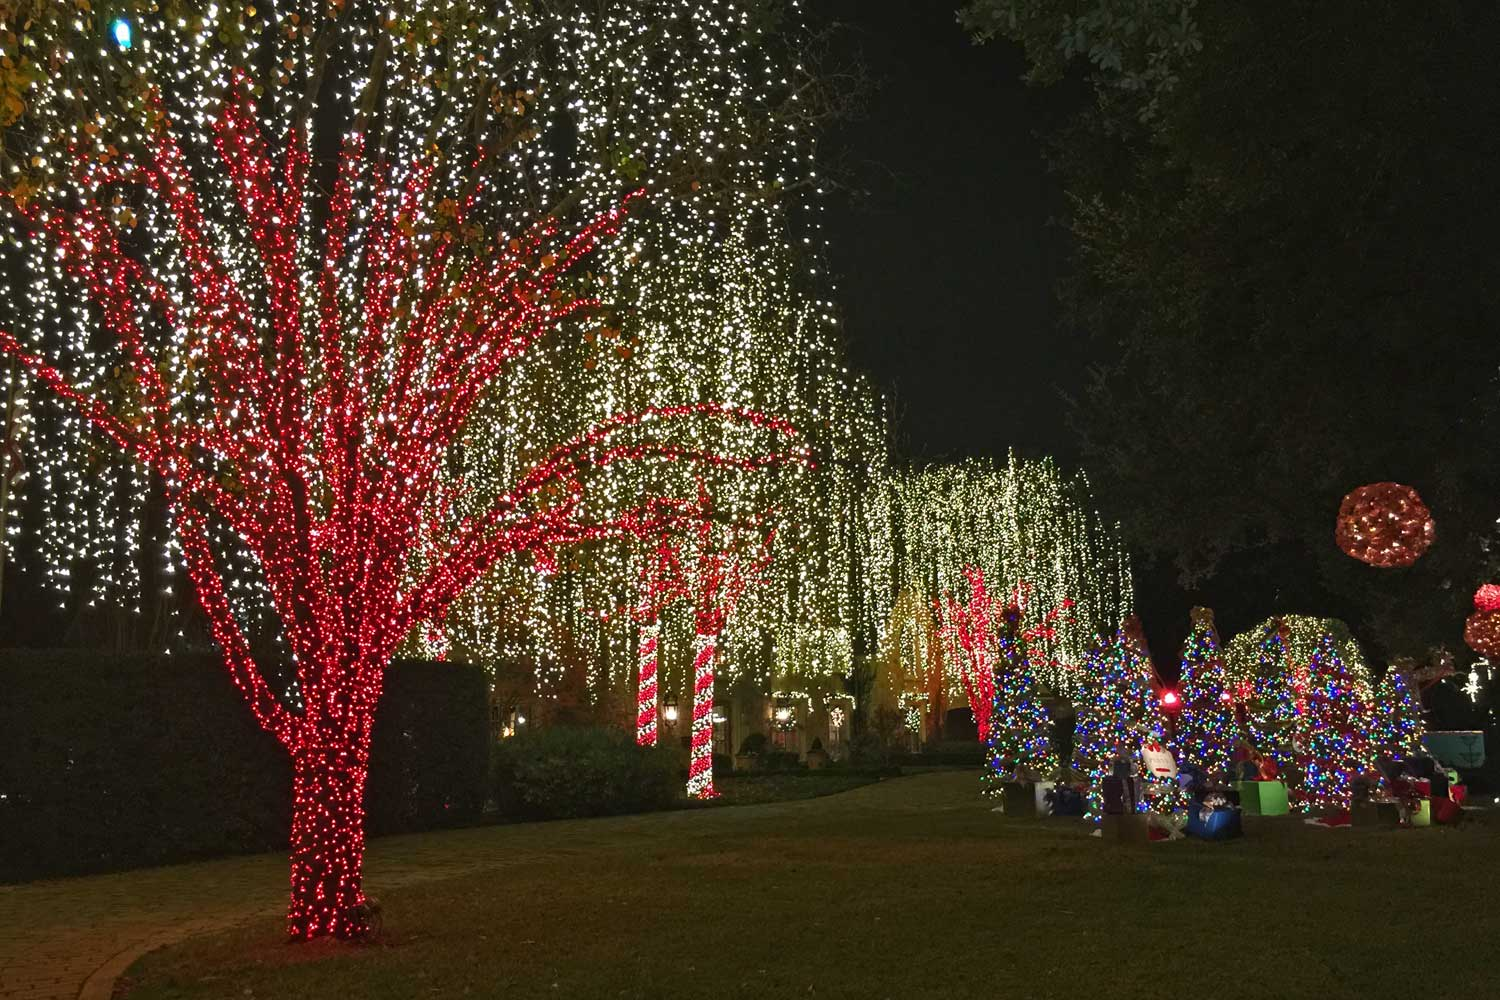 The showstopper of the night &the must see on the tour is this impressive display on Druid Lane in University Park. You will probably want to park and get out to see this one up close and personal like everyone else. Wow.